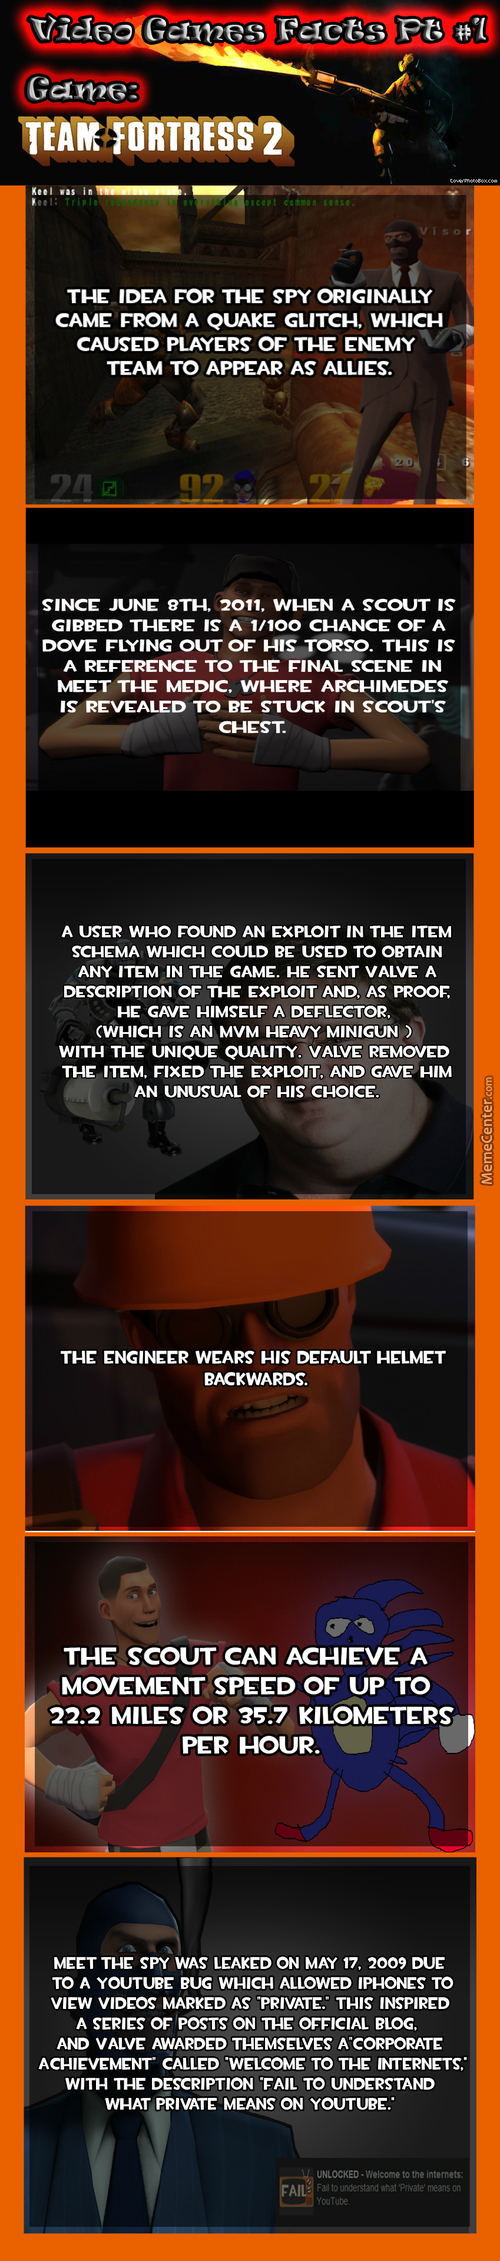 Video Games Facts Part 1, Game Tf2